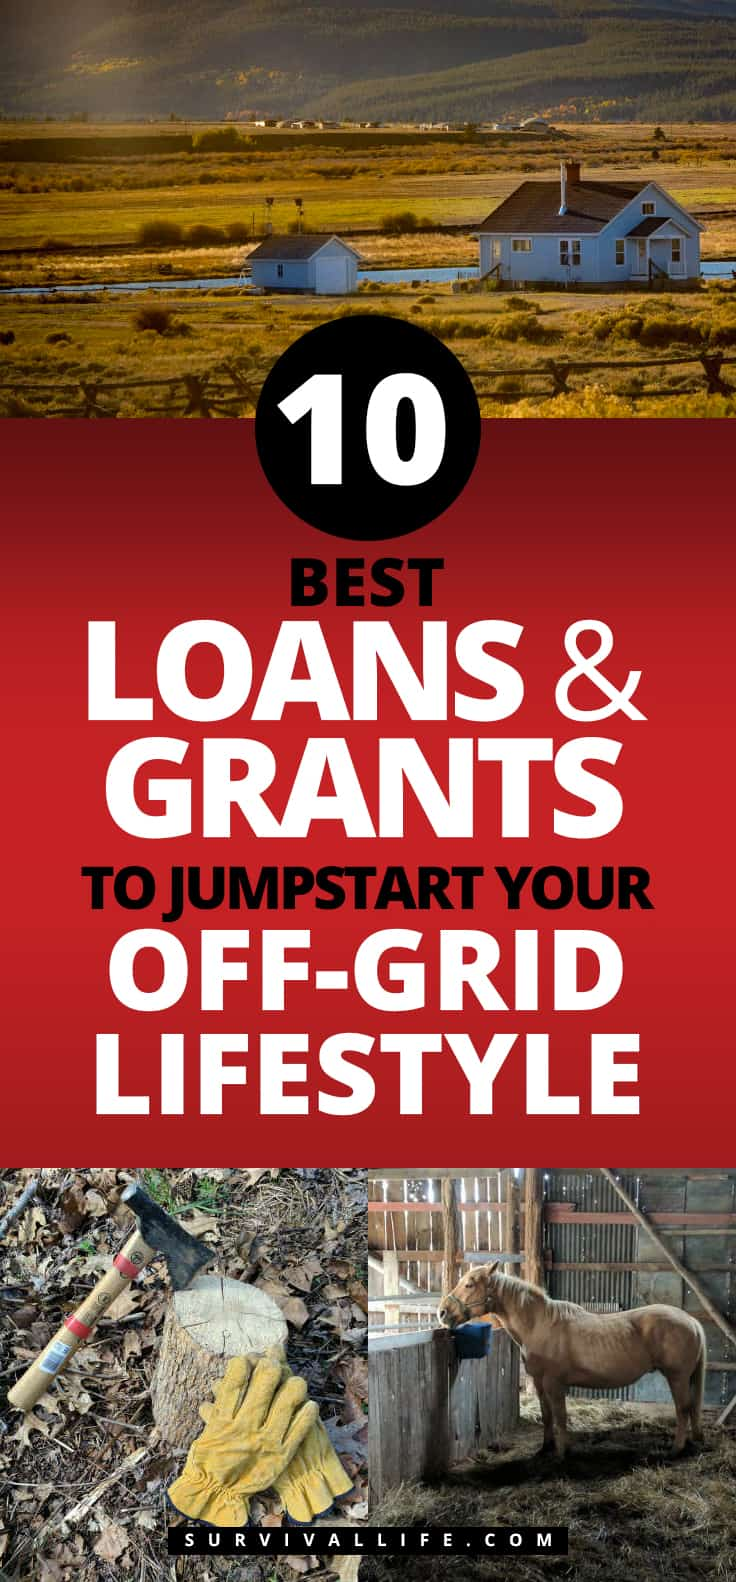 Best Loans And Grants To Jumpstart Your Off-Grid Lifestyle | https://survivallife.com/loans-grants-preppers-homesteaders/